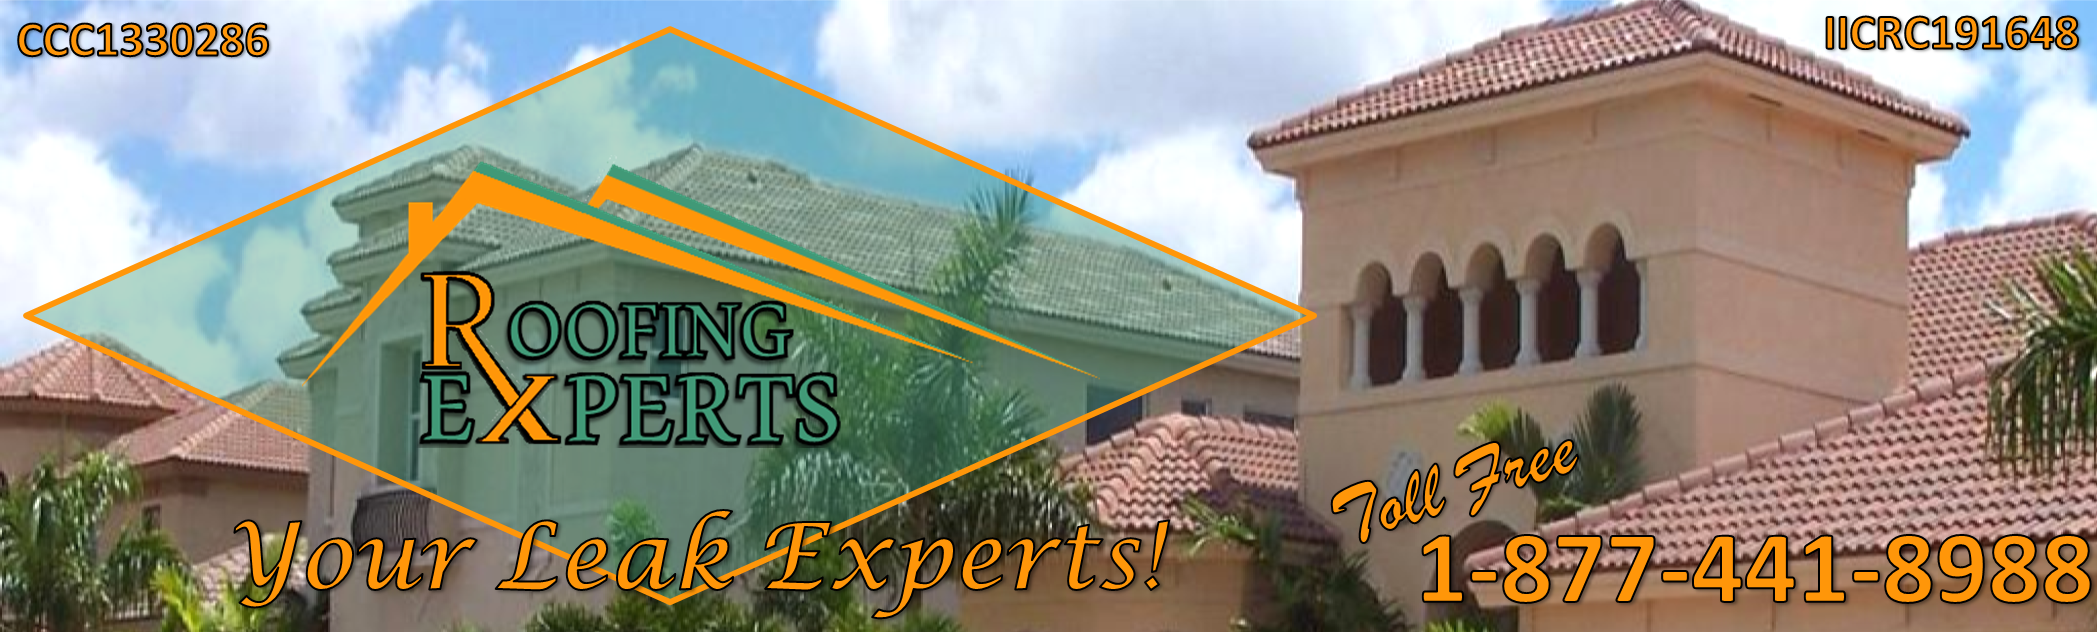 Roofing Experts, Inc. Logo